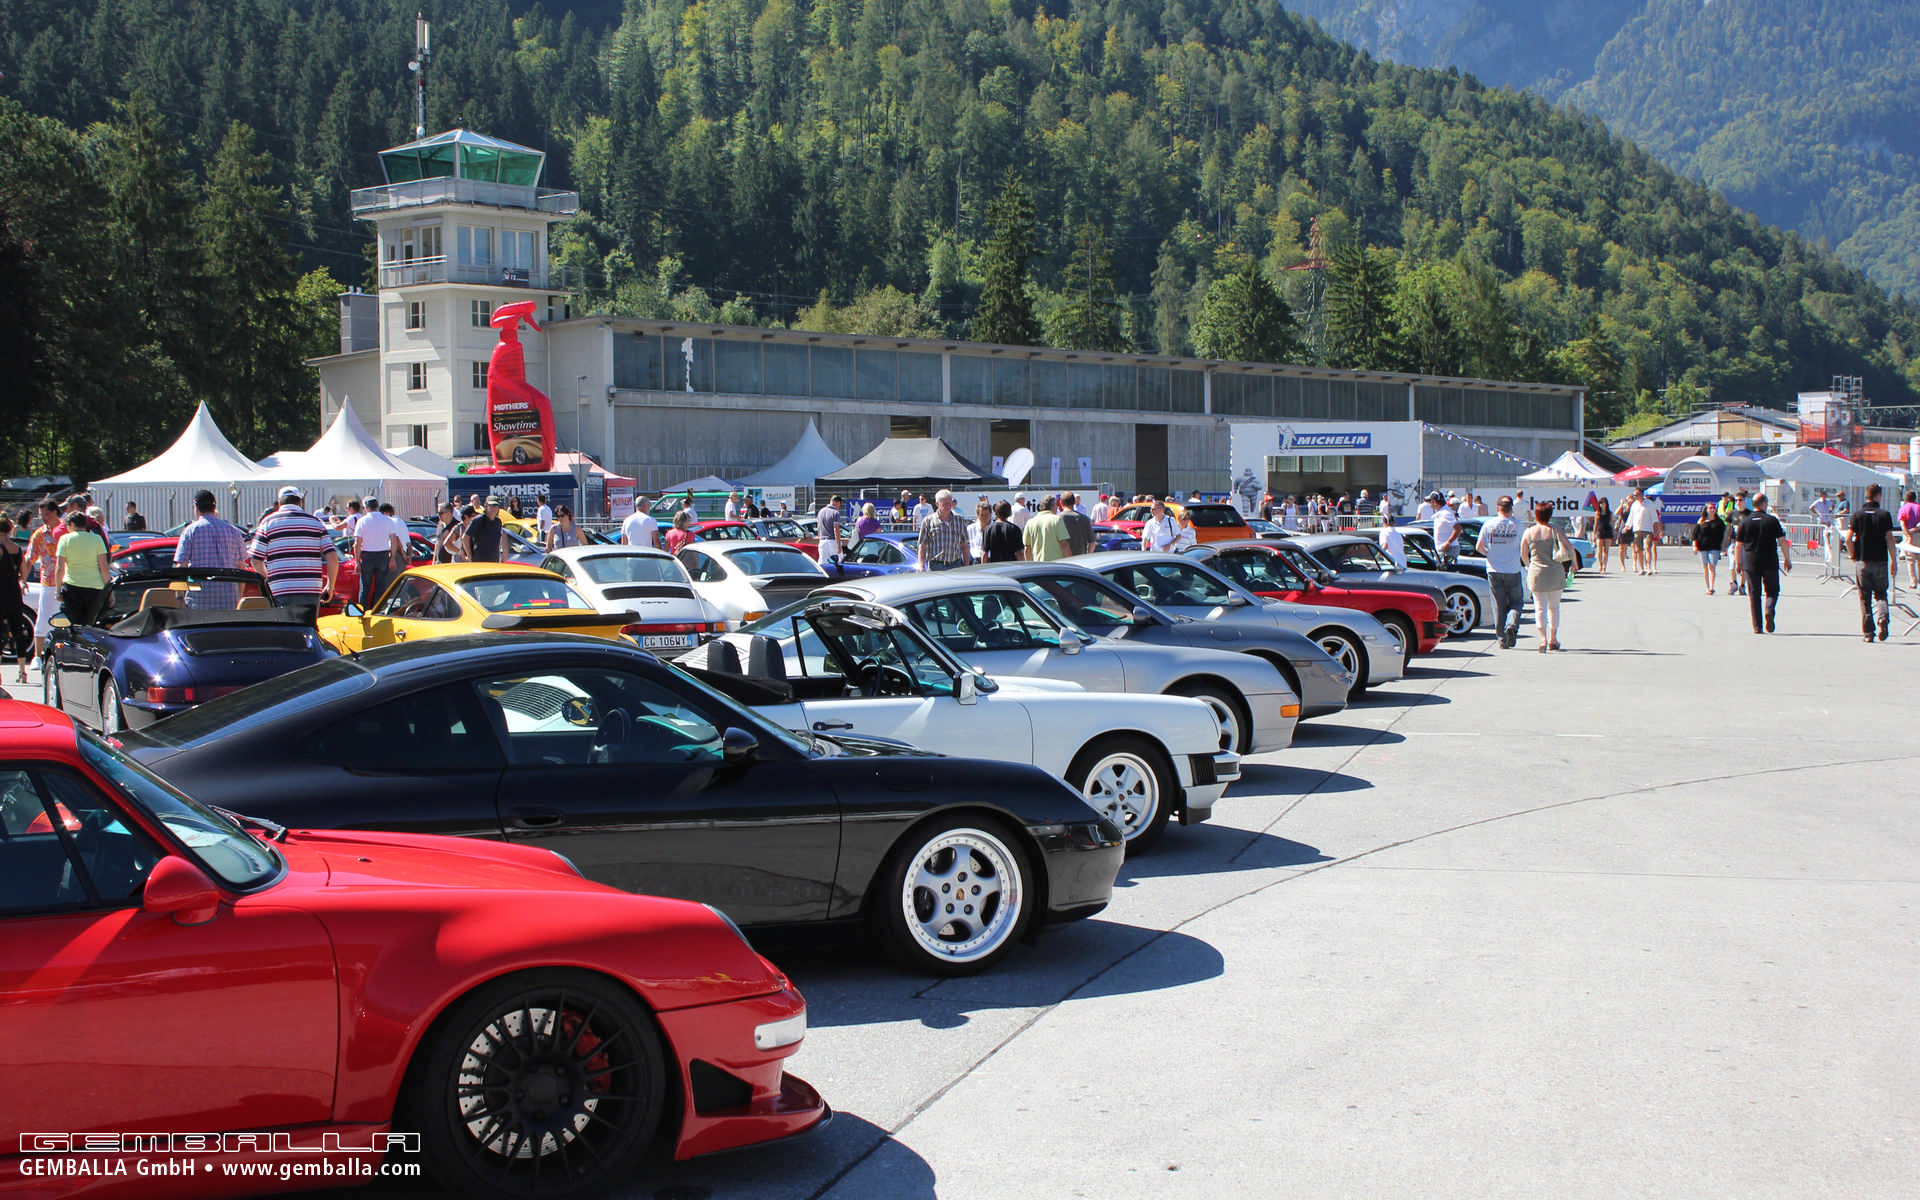 gemballa_gmbh_event_pt_interlaken_2012_008